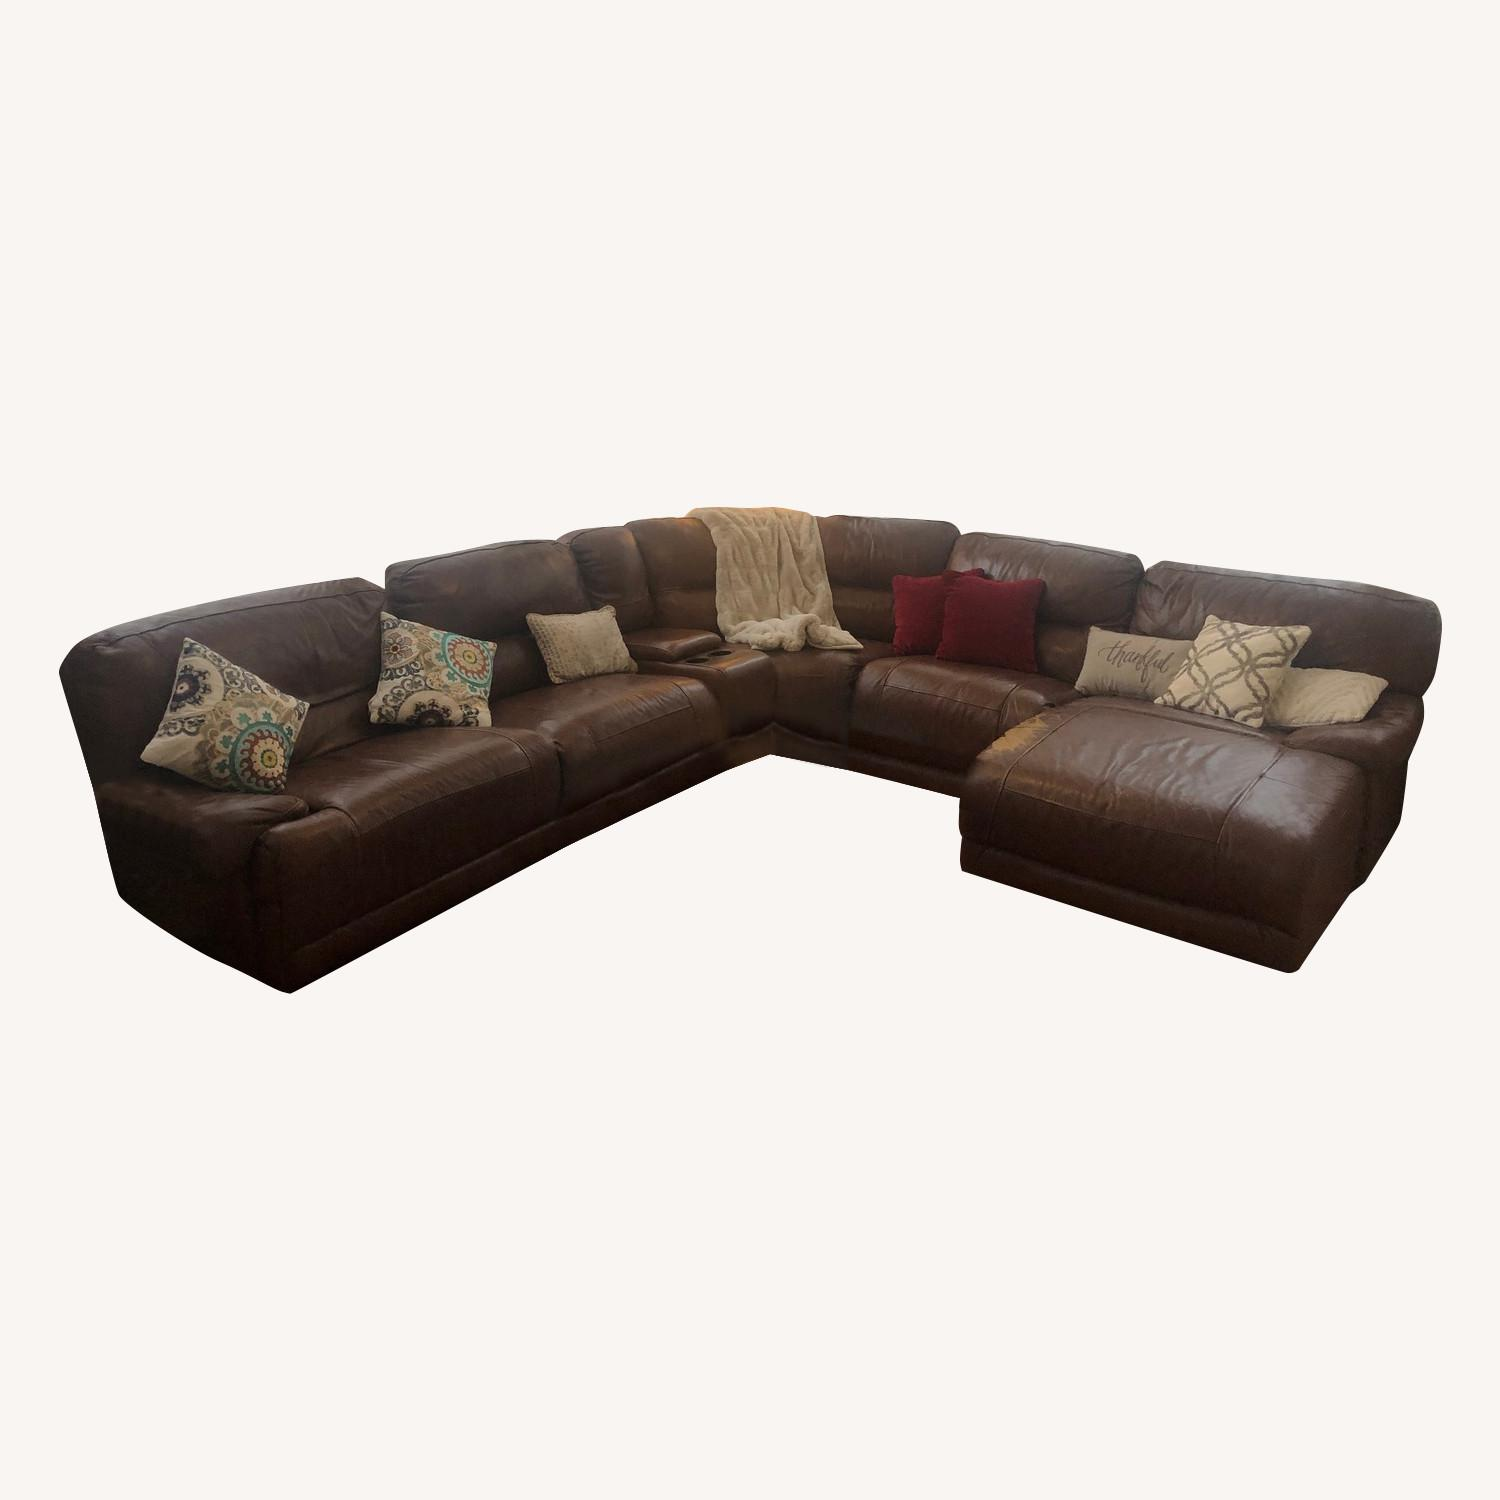 Bob's Large and Beautiful Leather Sectional